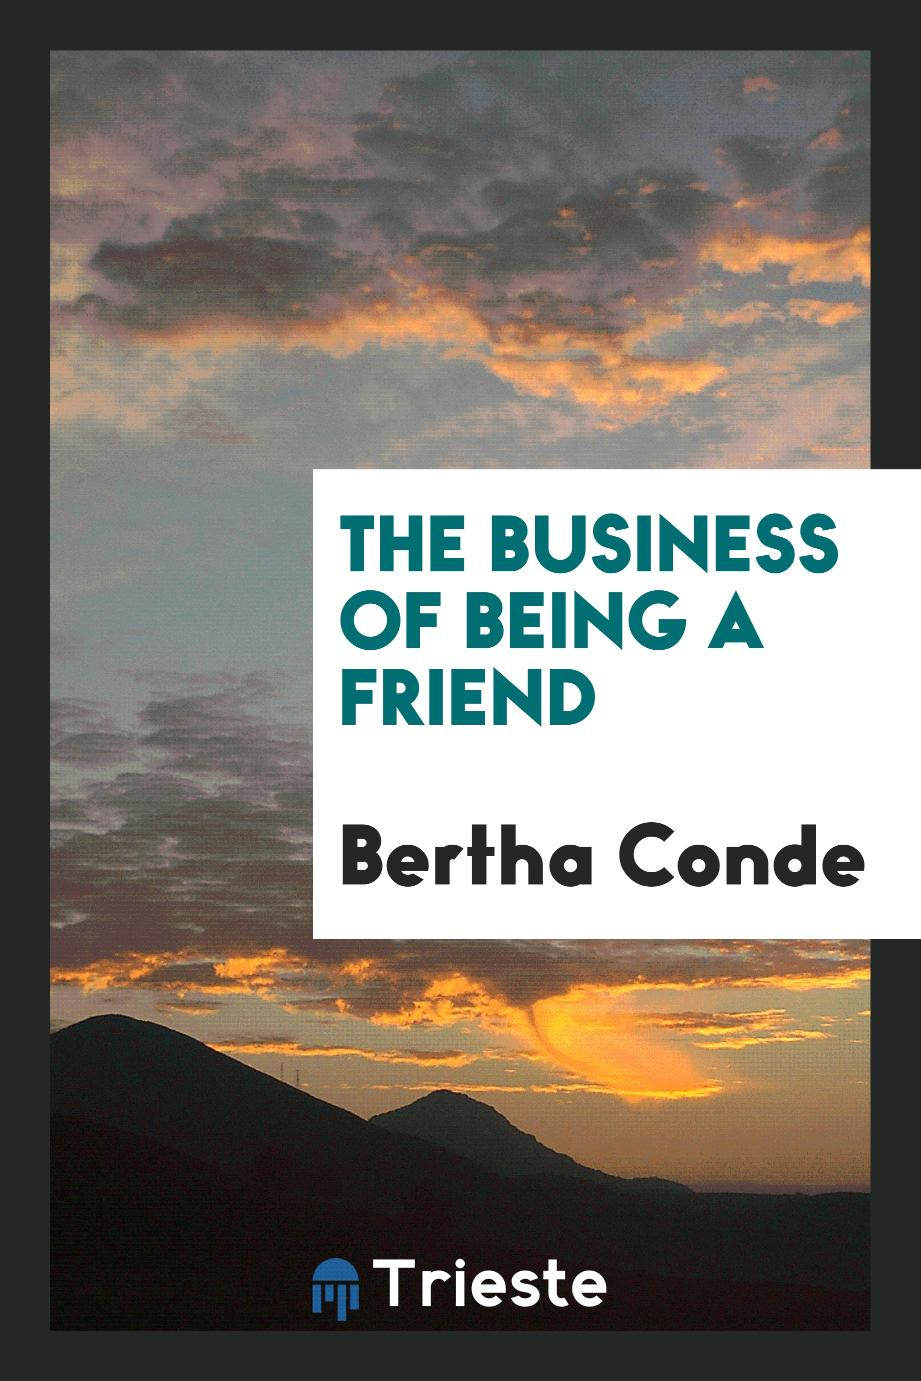 The Business of Being a Friend